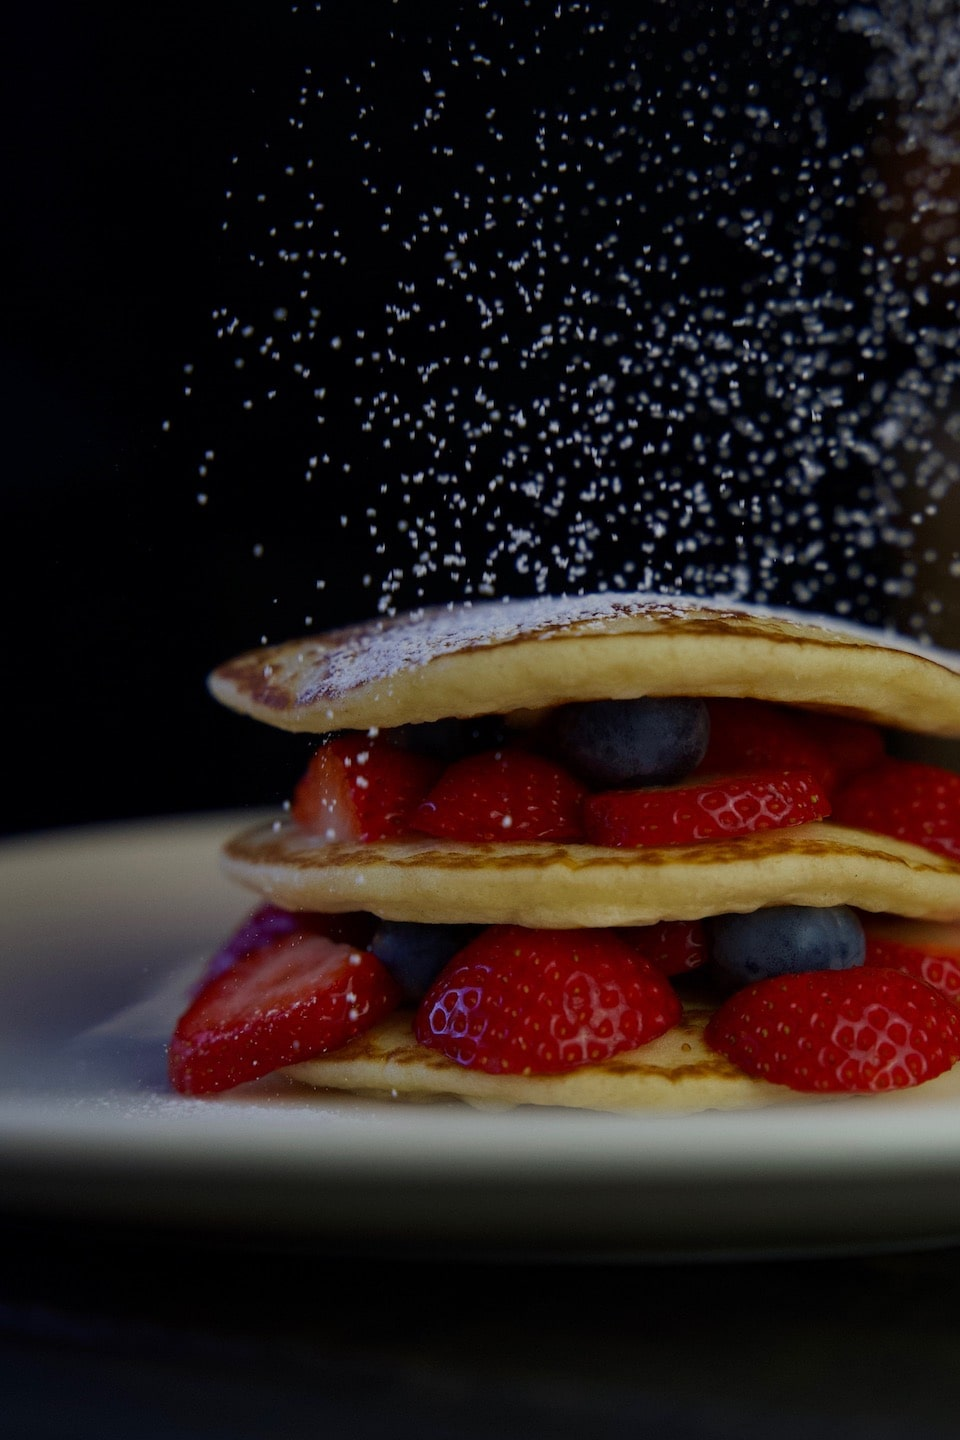 Pancake with strawberry and blueberry